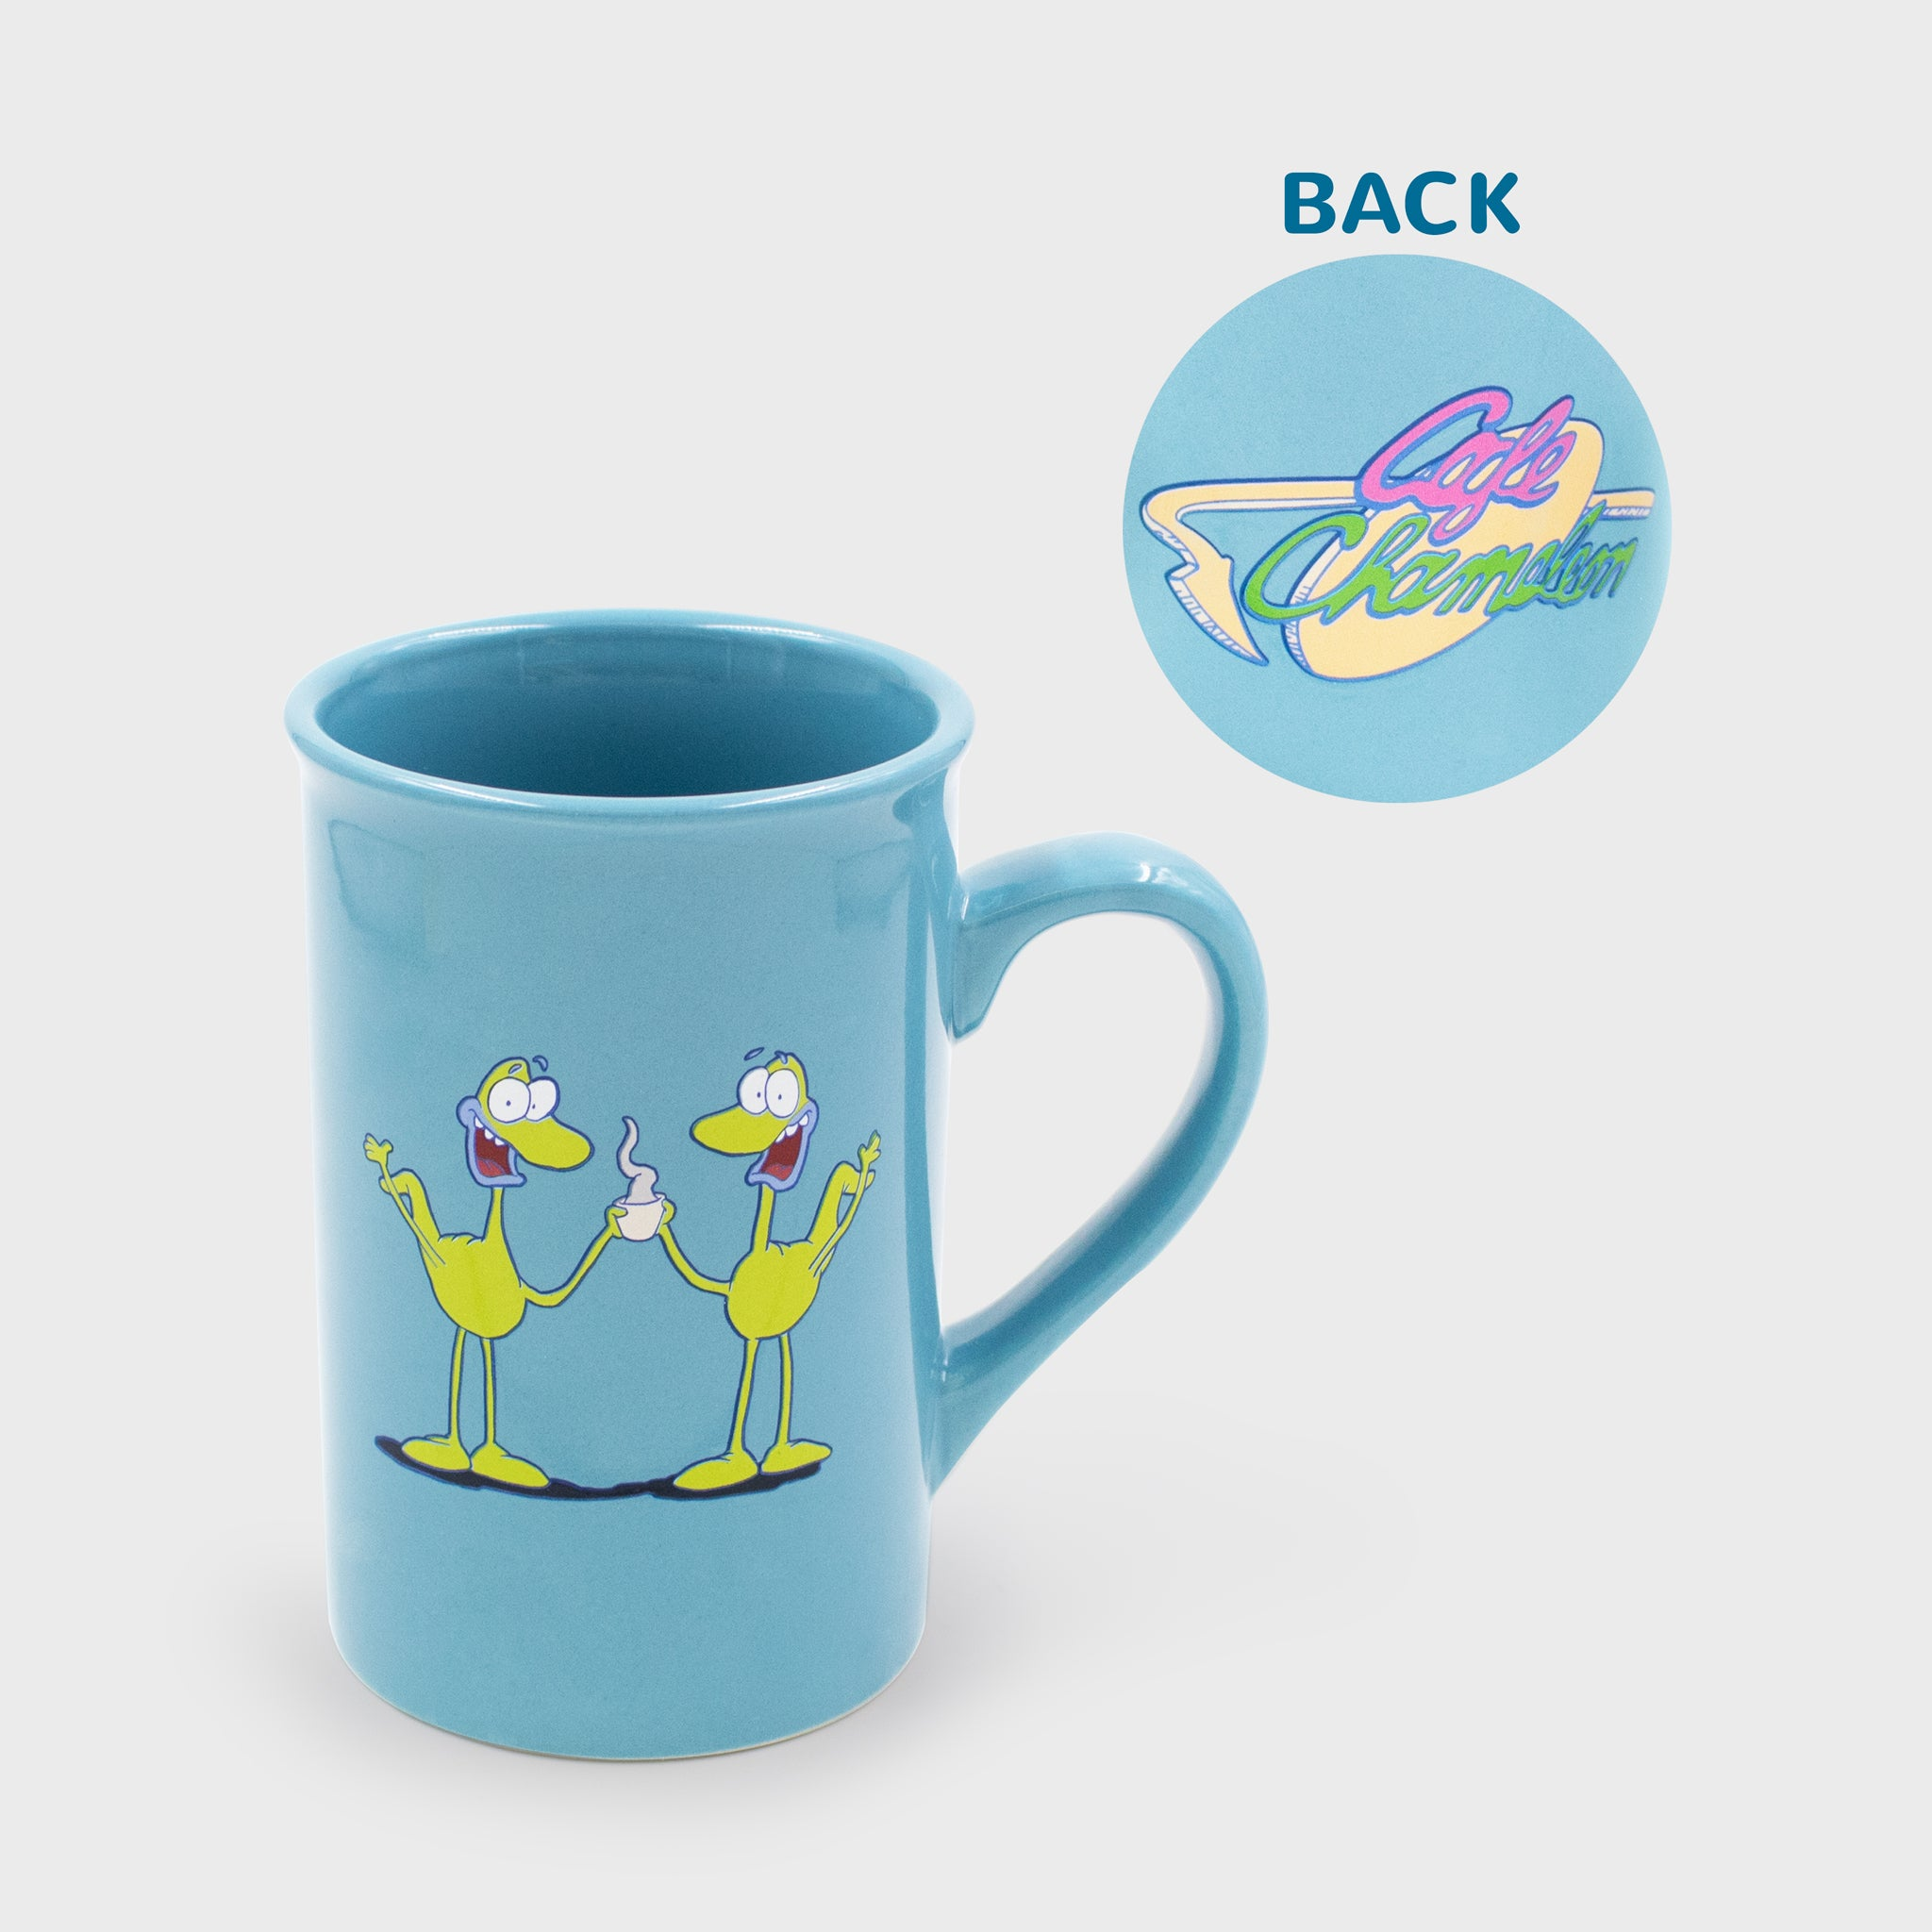 the nick box nickelodeon 90s kids 90s cartoons nostalgia throwback nostalgic classic subscription quarterly exclusive limited edition collectible rocko's modern life mug kitchenware culturefly